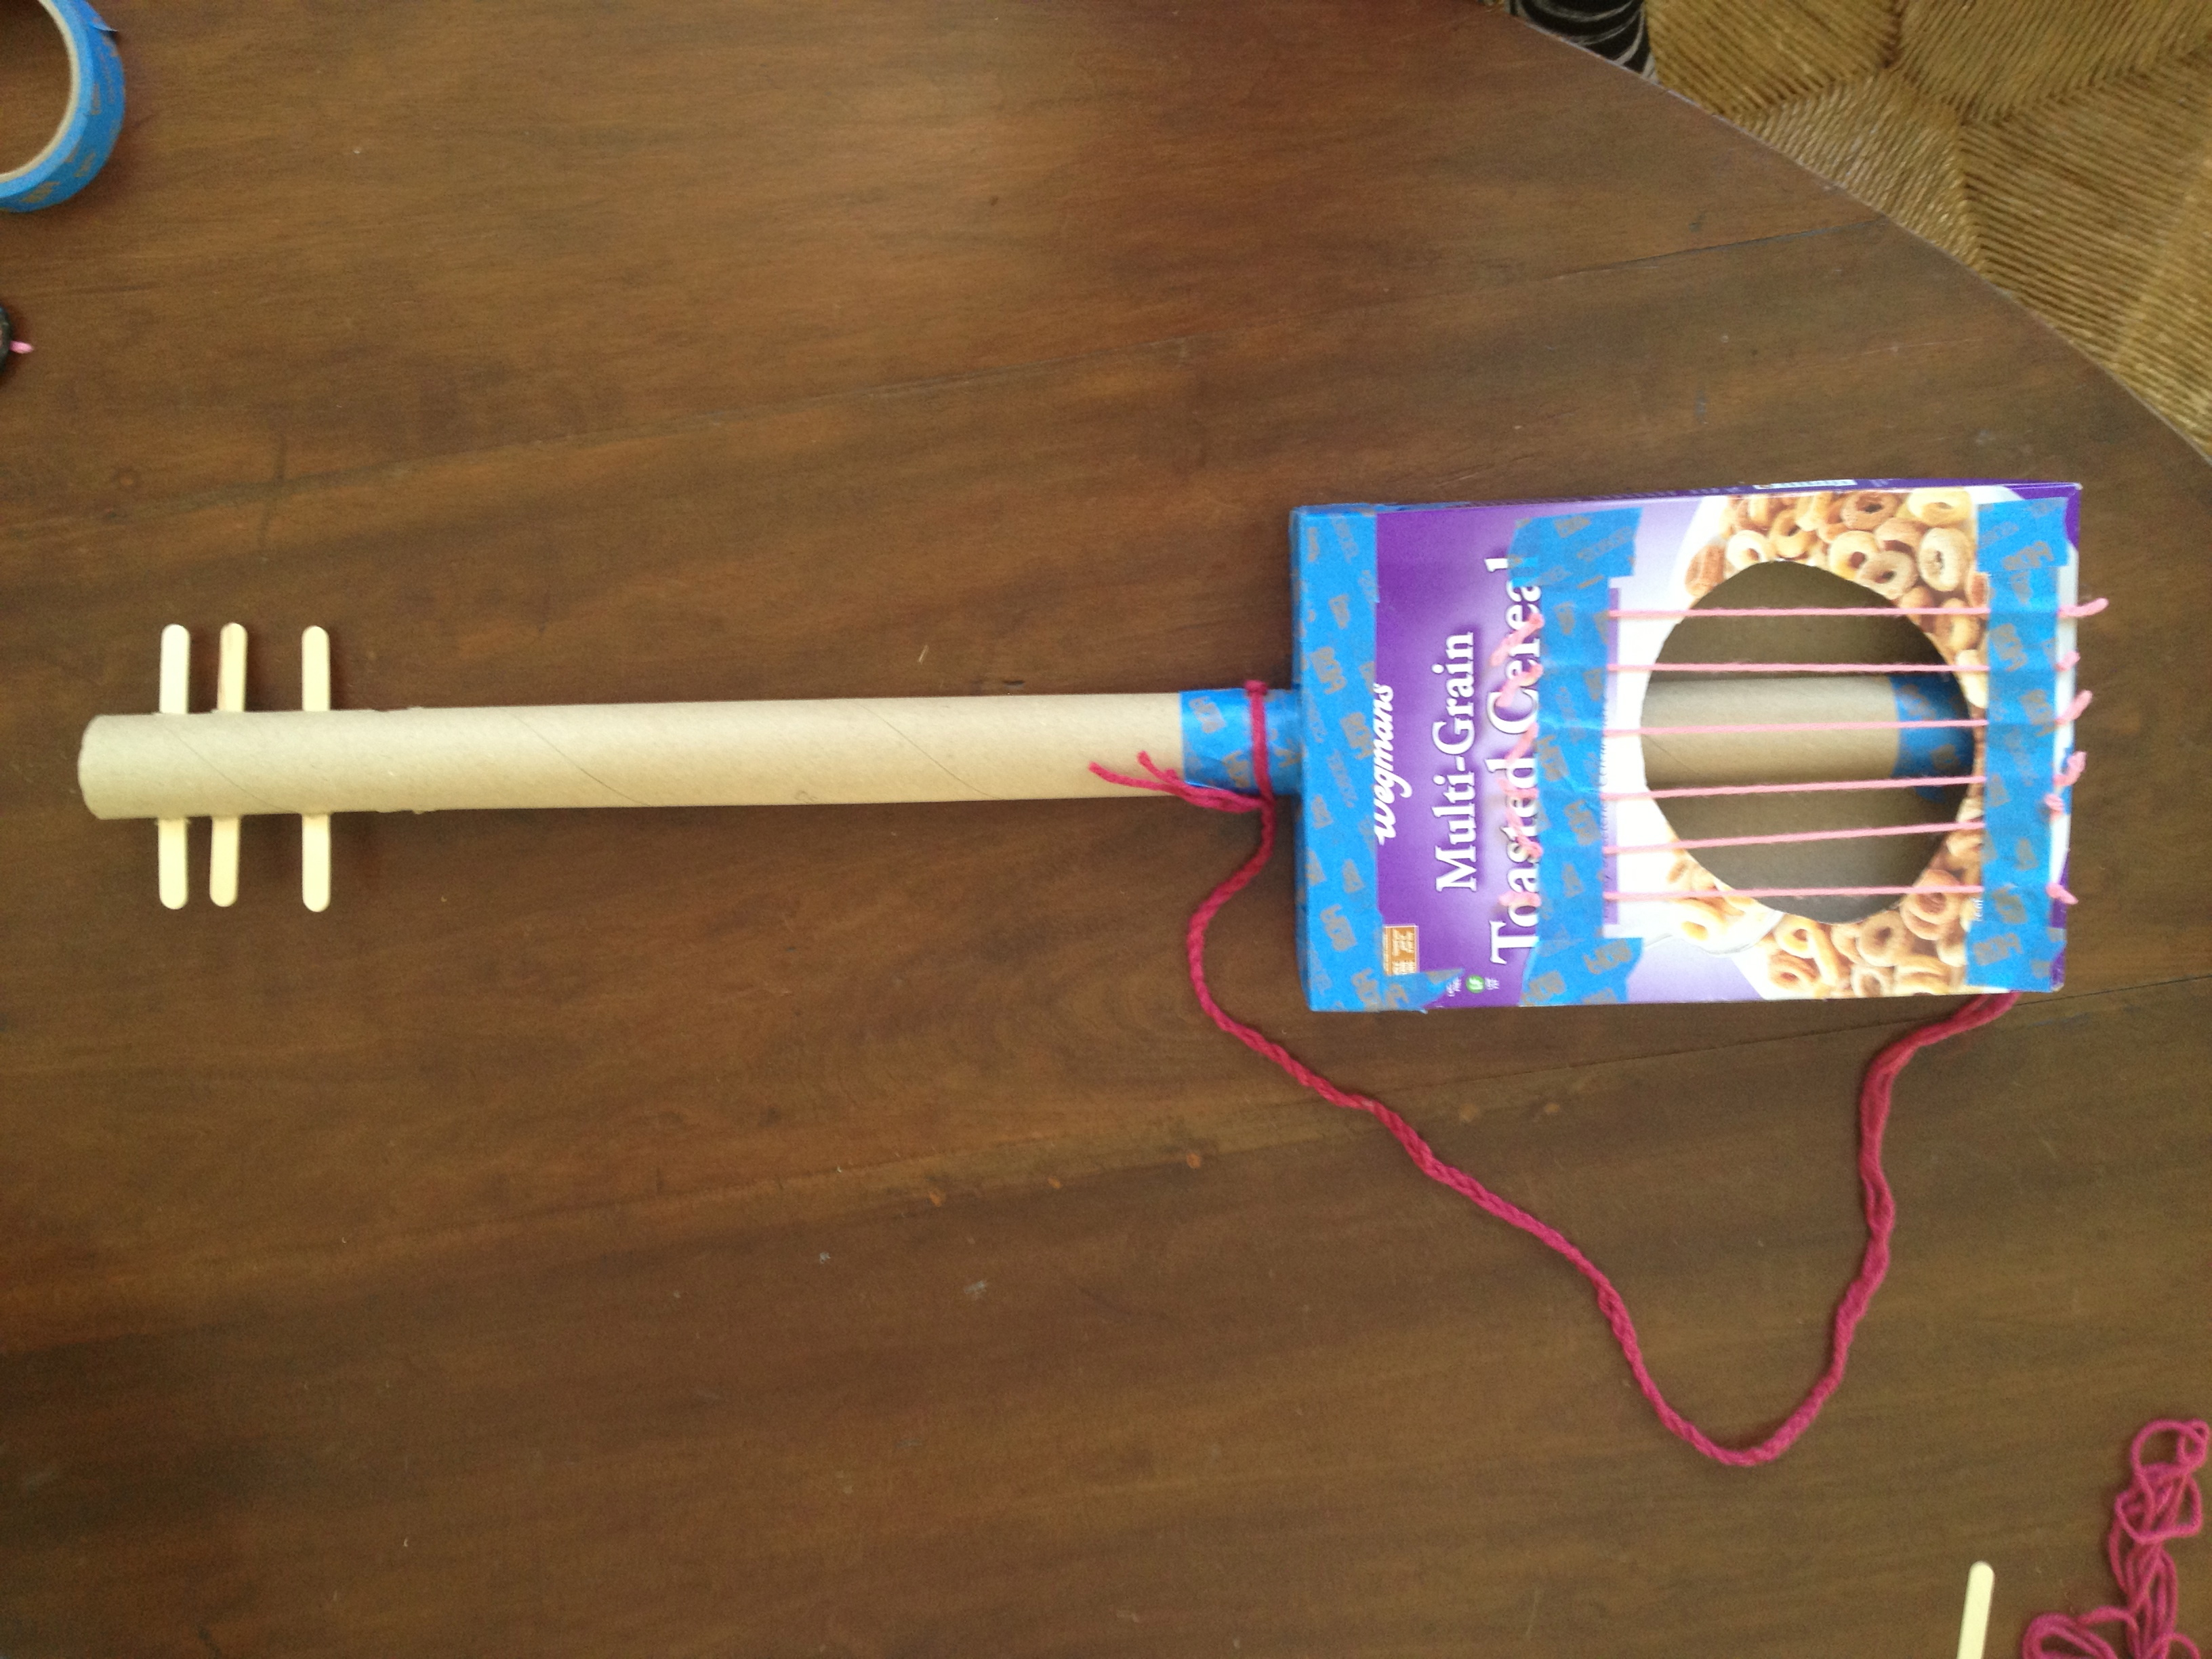 How to make a homemade guitar with cereal box homemade for How to make homemade items